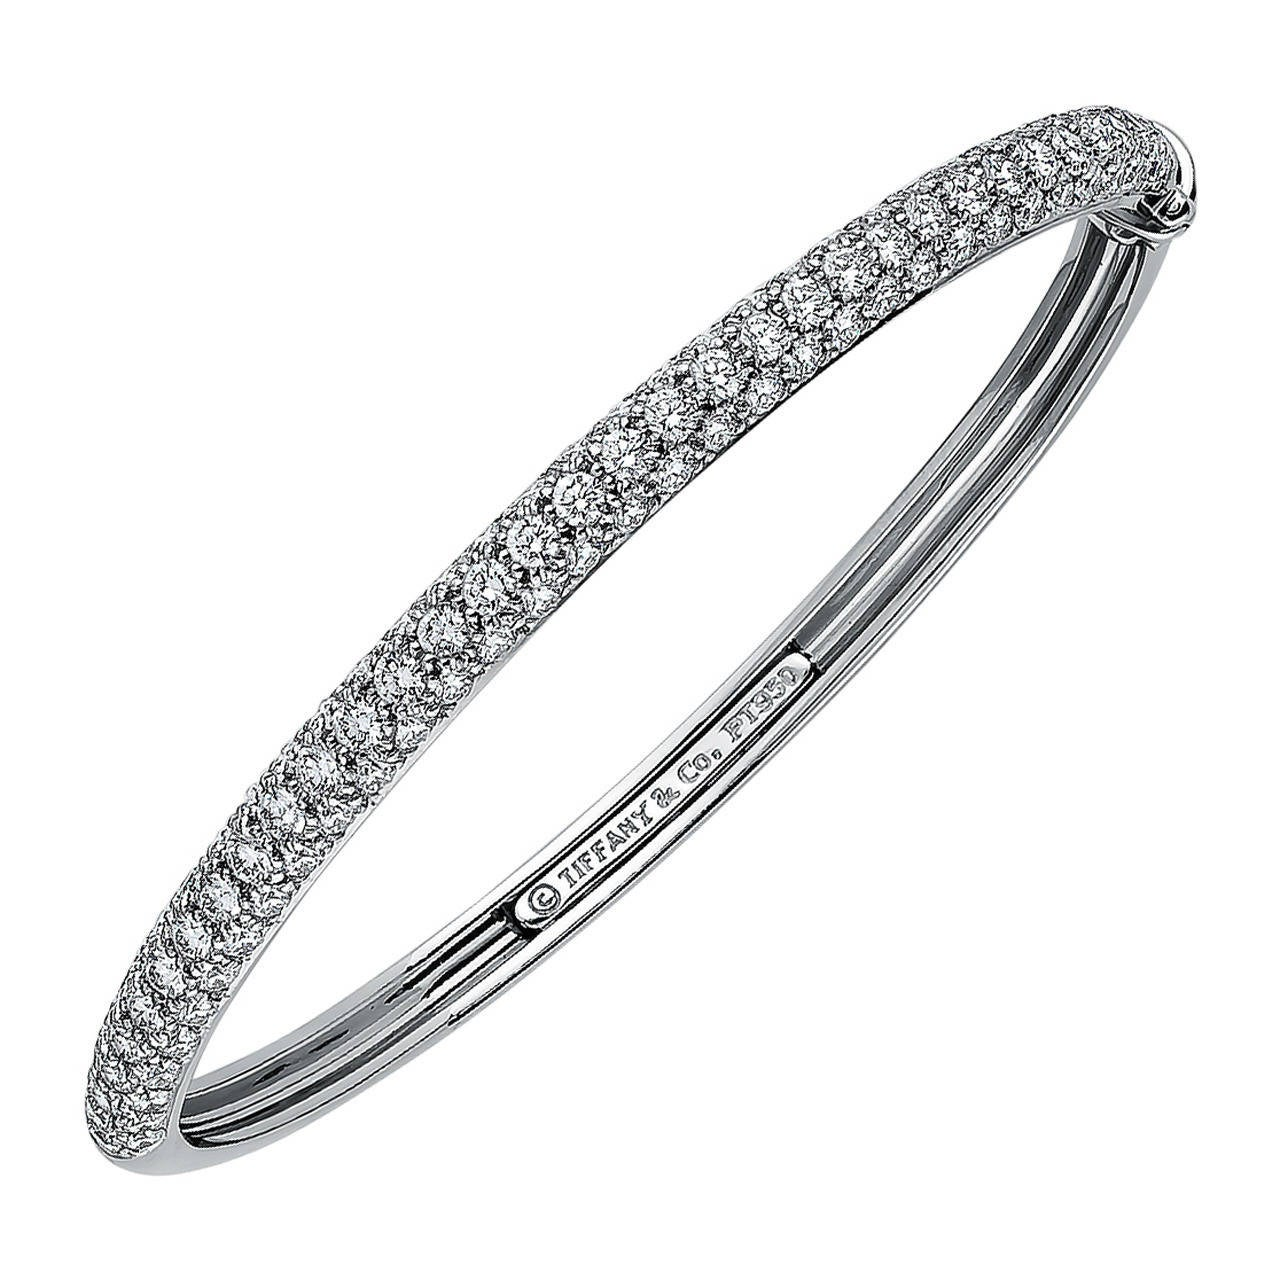 dilarasaatci new bangles diamond bracelet celine the black products silver rhodium bangle